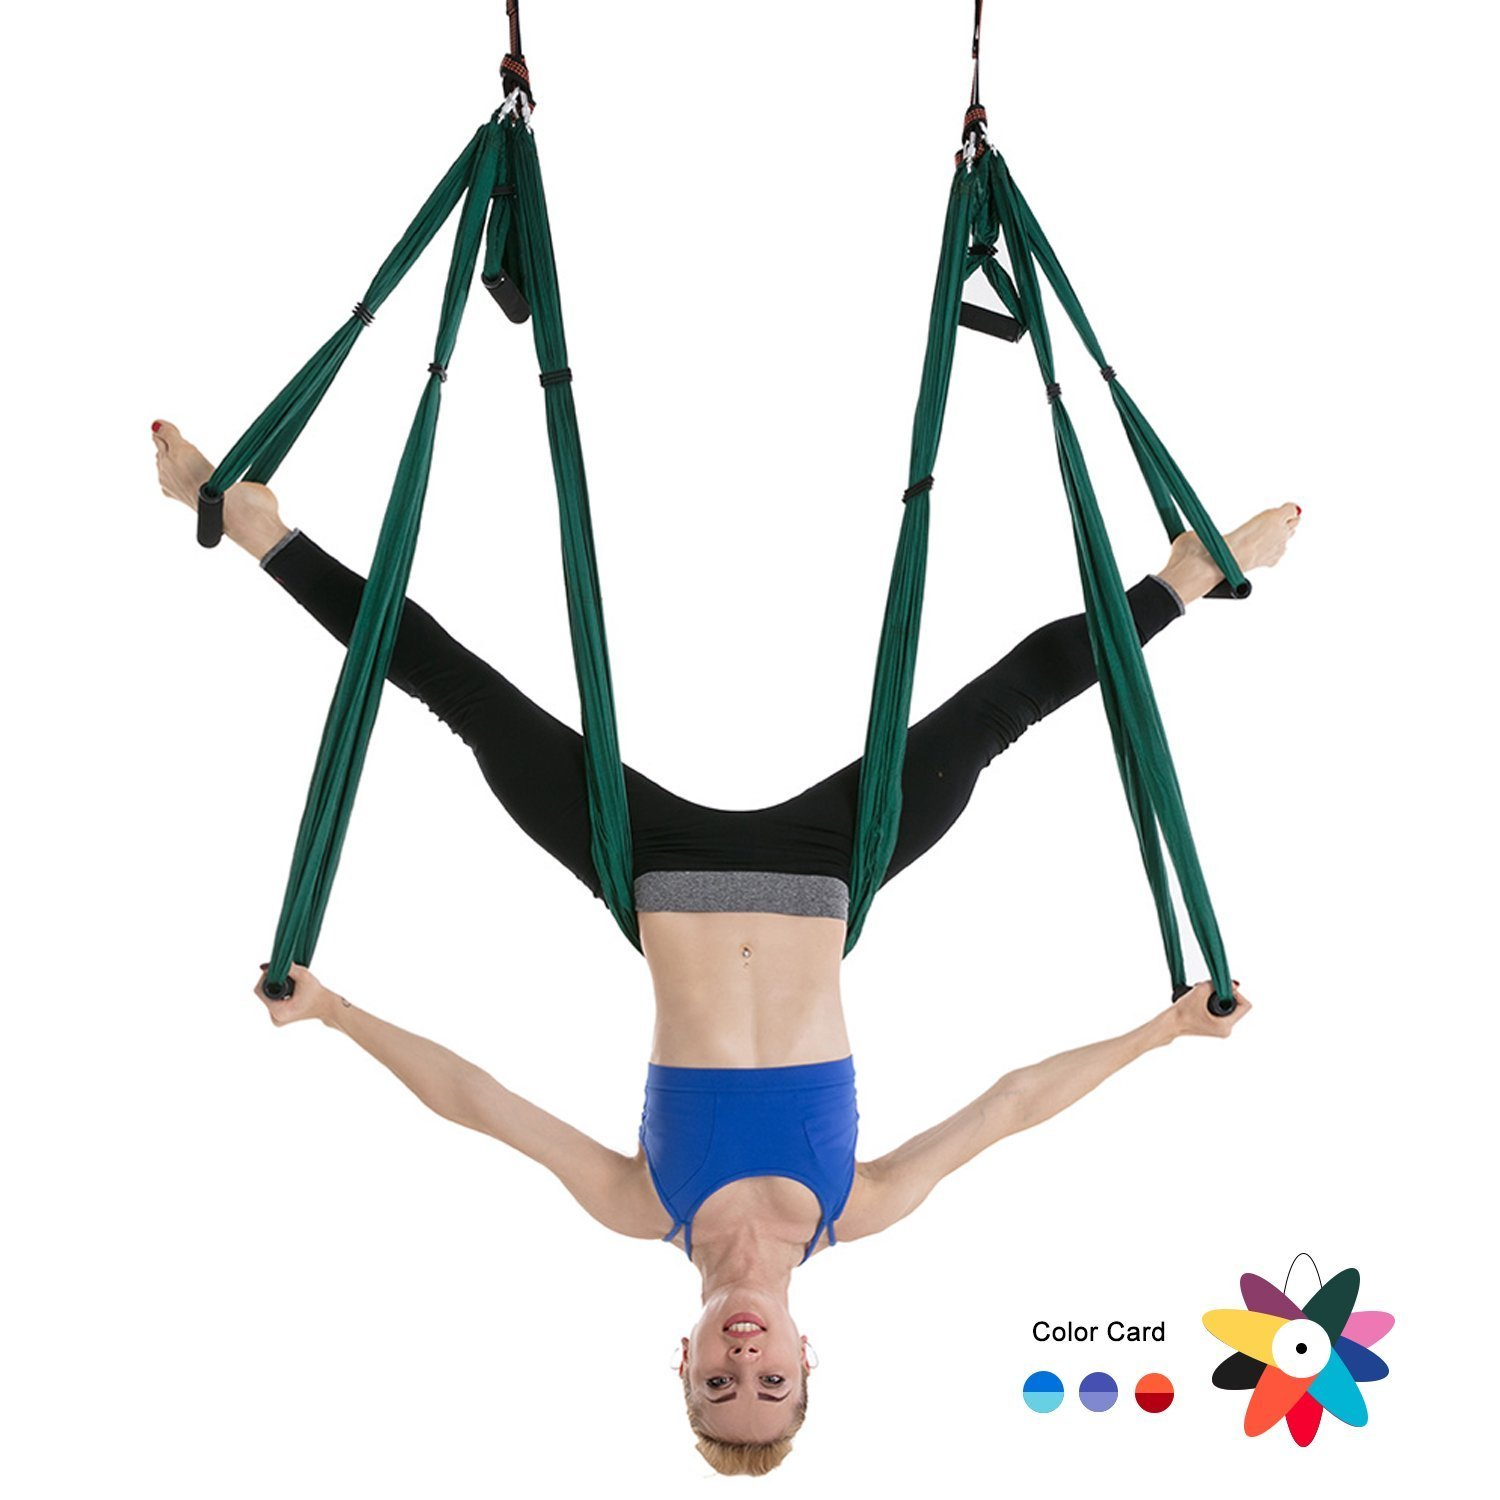 Ranbo Yoga Inversion Swing - Anti-Gravity Aerial Trapeze - Flying Hammock Sling - Relieves Back Pains, Improves your Strength, Balance, Flexibility and Endurance (Dark green)